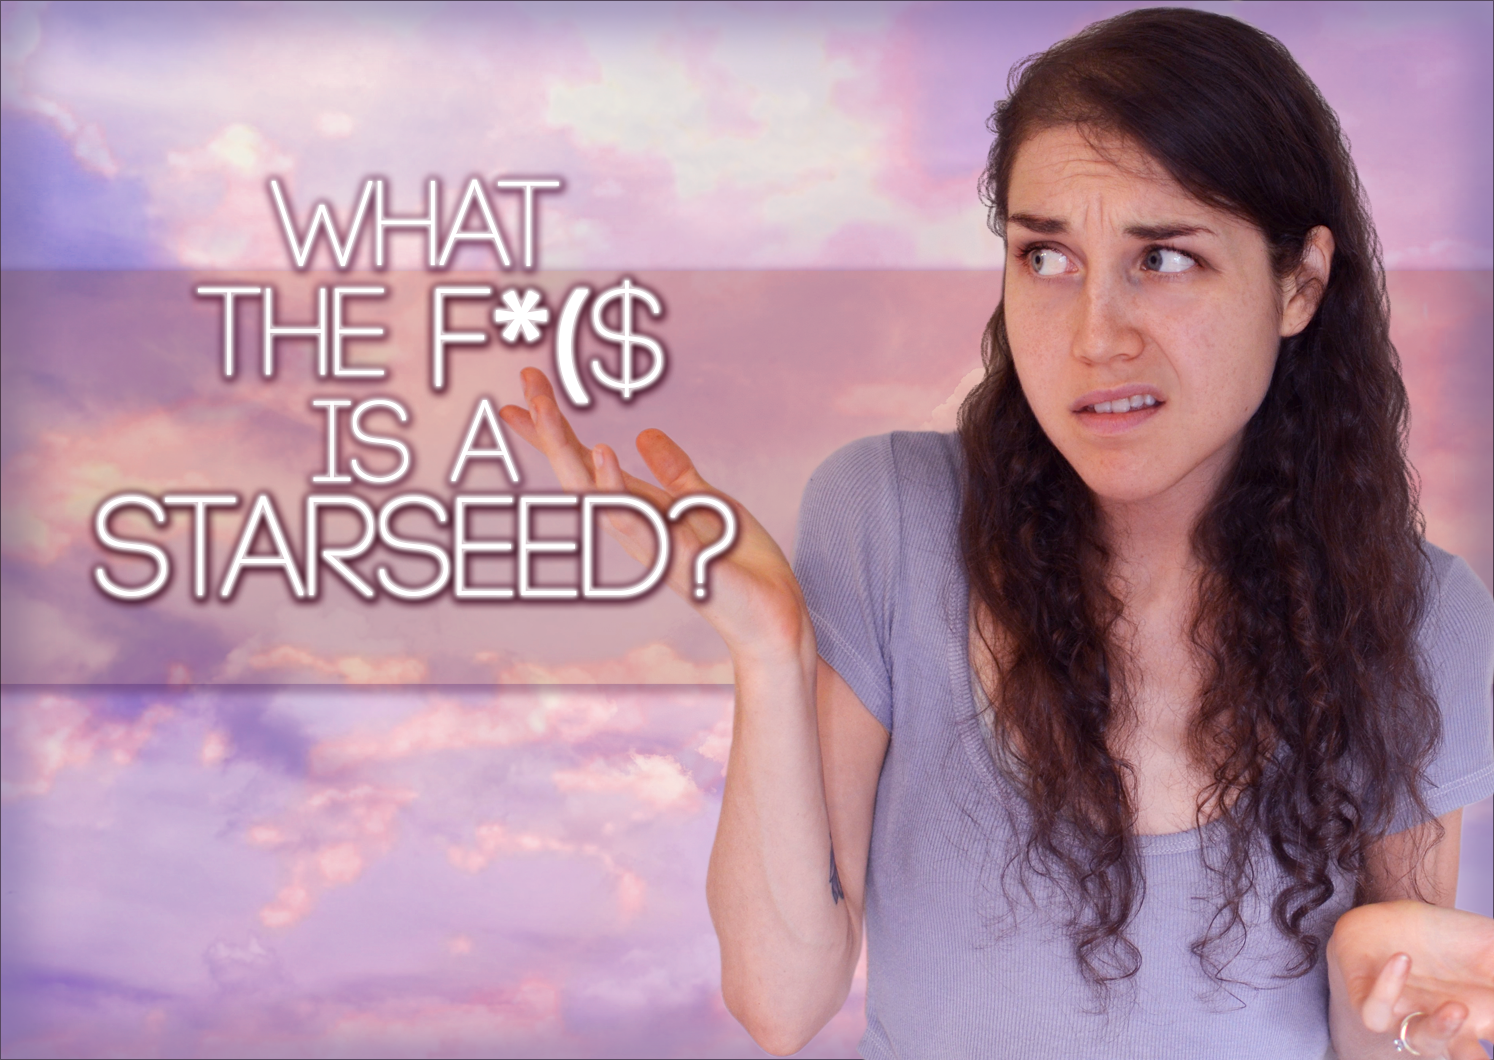 What The F*($ Is A StarSeed?